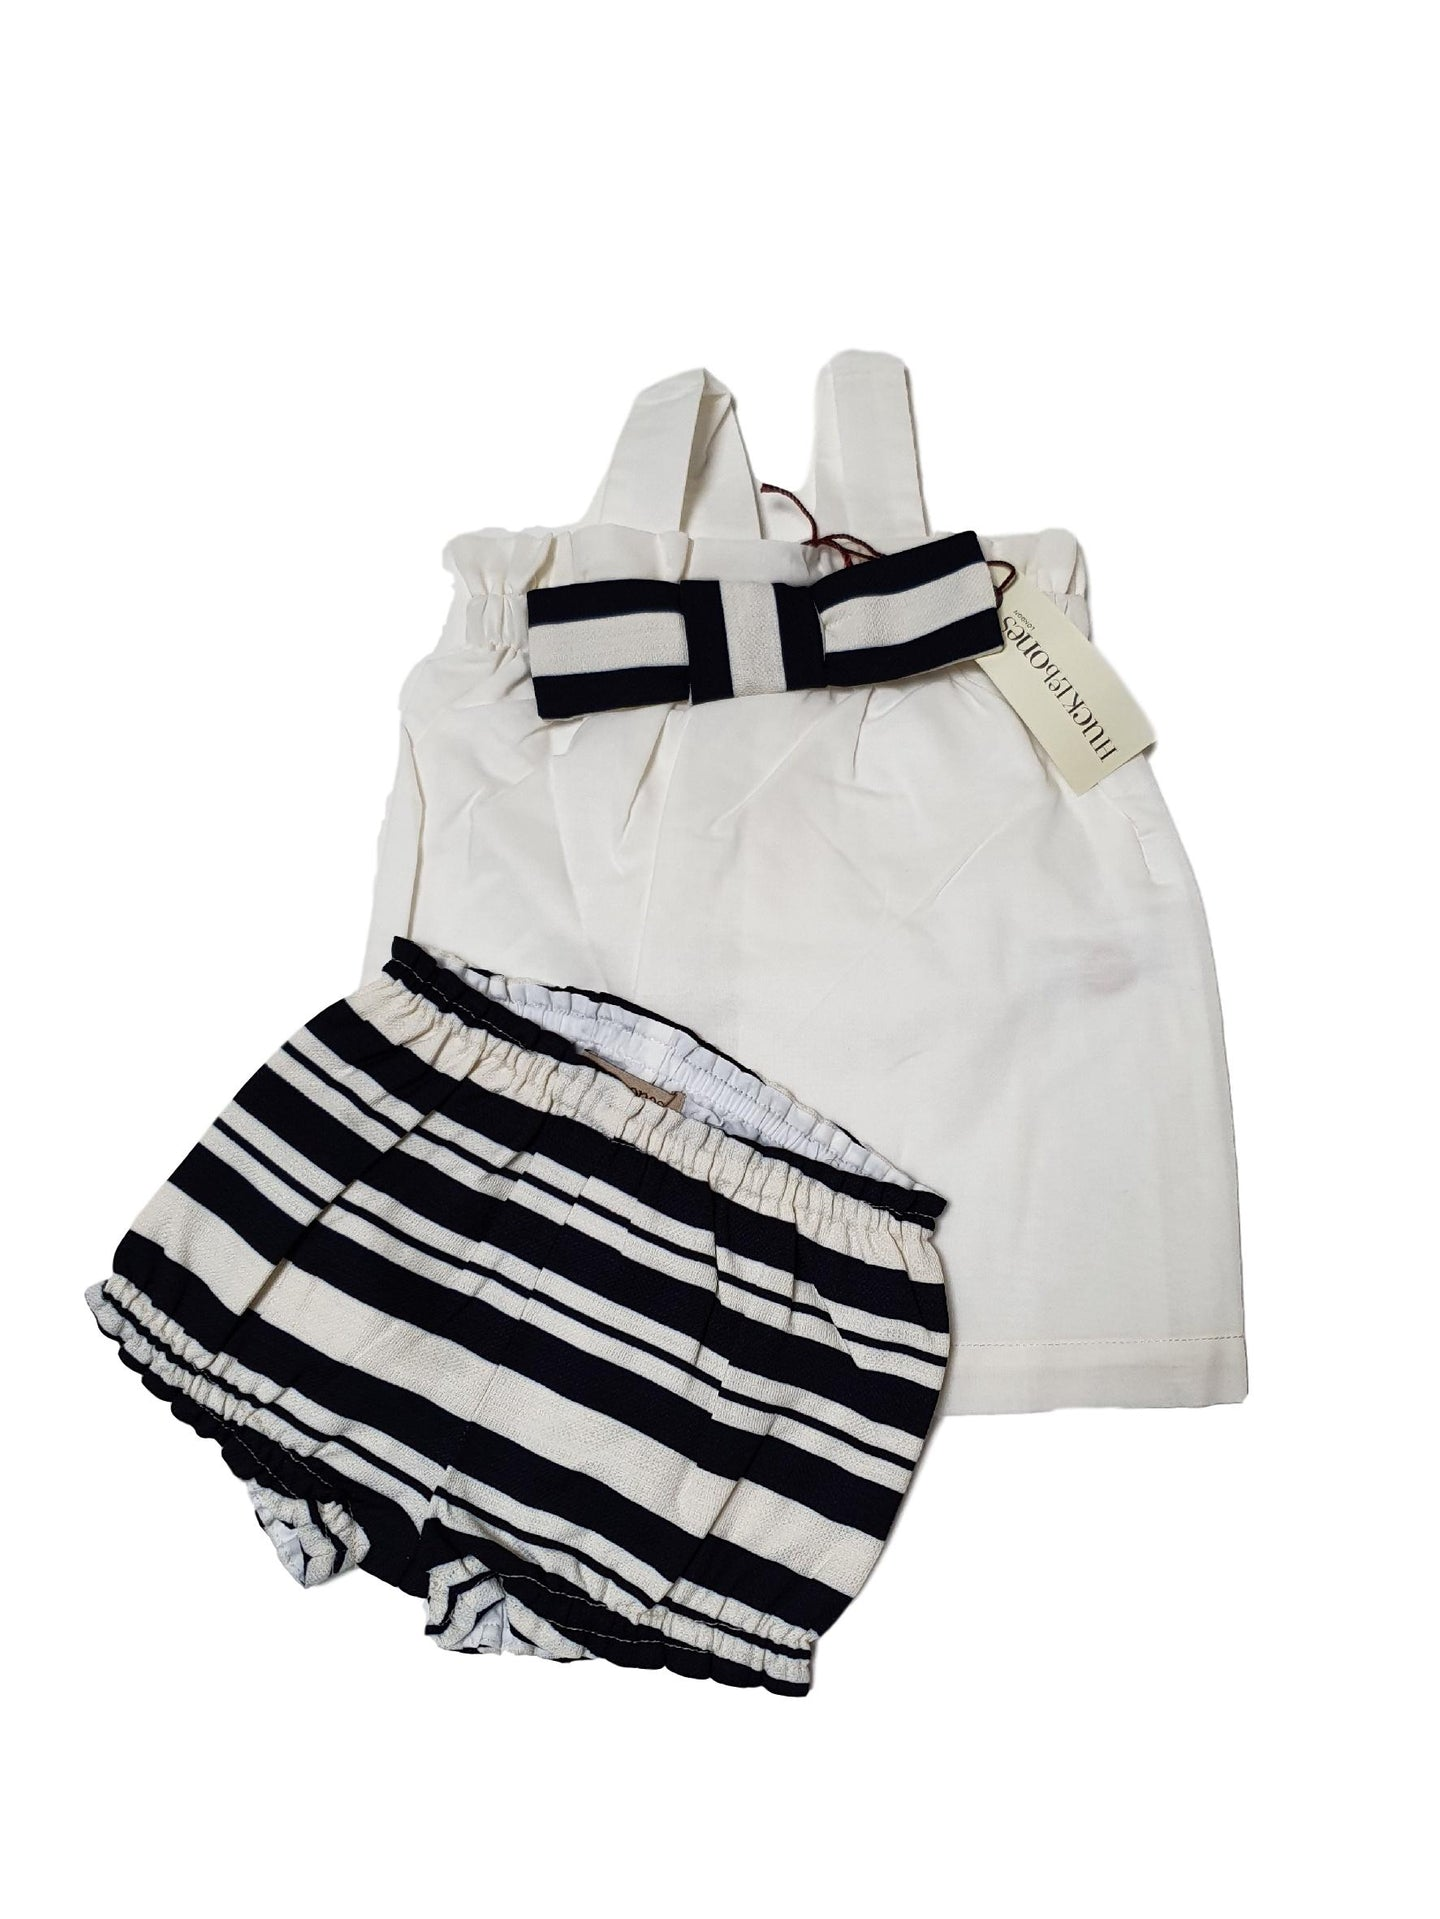 HUCKLOEBONES OUTLET girl set 12m